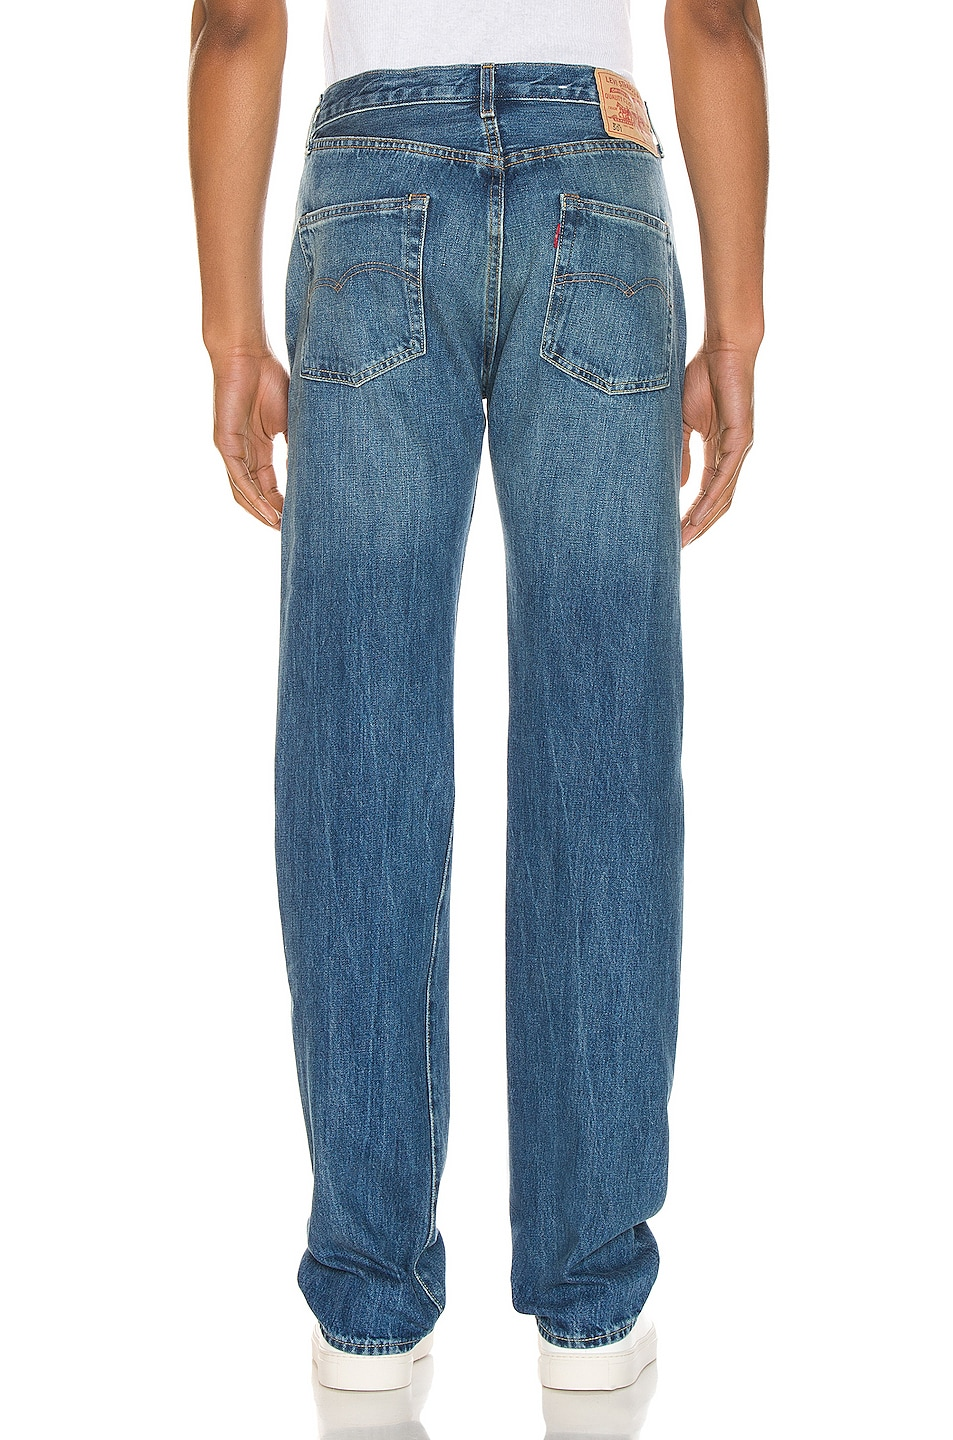 Image 3 of LEVI'S Vintage Clothing 1966 501 Jeans in Ramblin Man